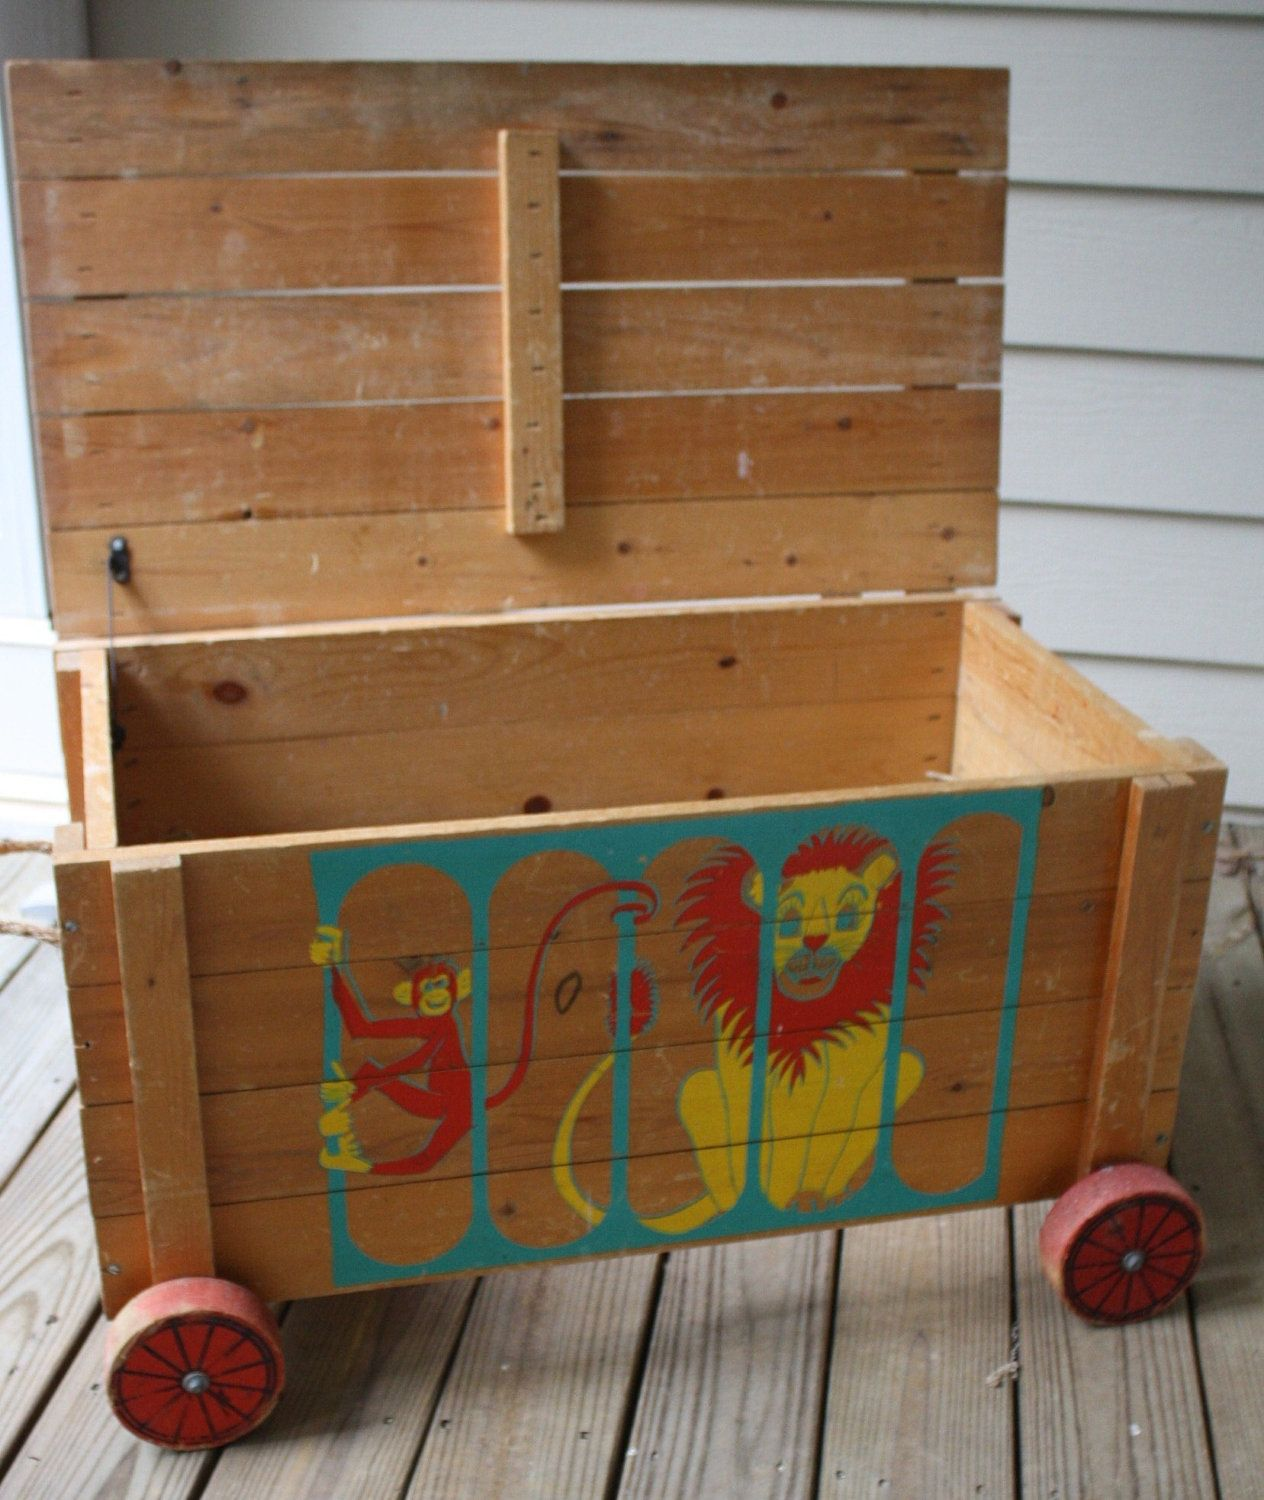 Retro Vintage Zoo Animals Wooden Toy Chest Trunk Wagon 250 00 Via Etsy Wooden Toy Chest Old Toys Toy Chest